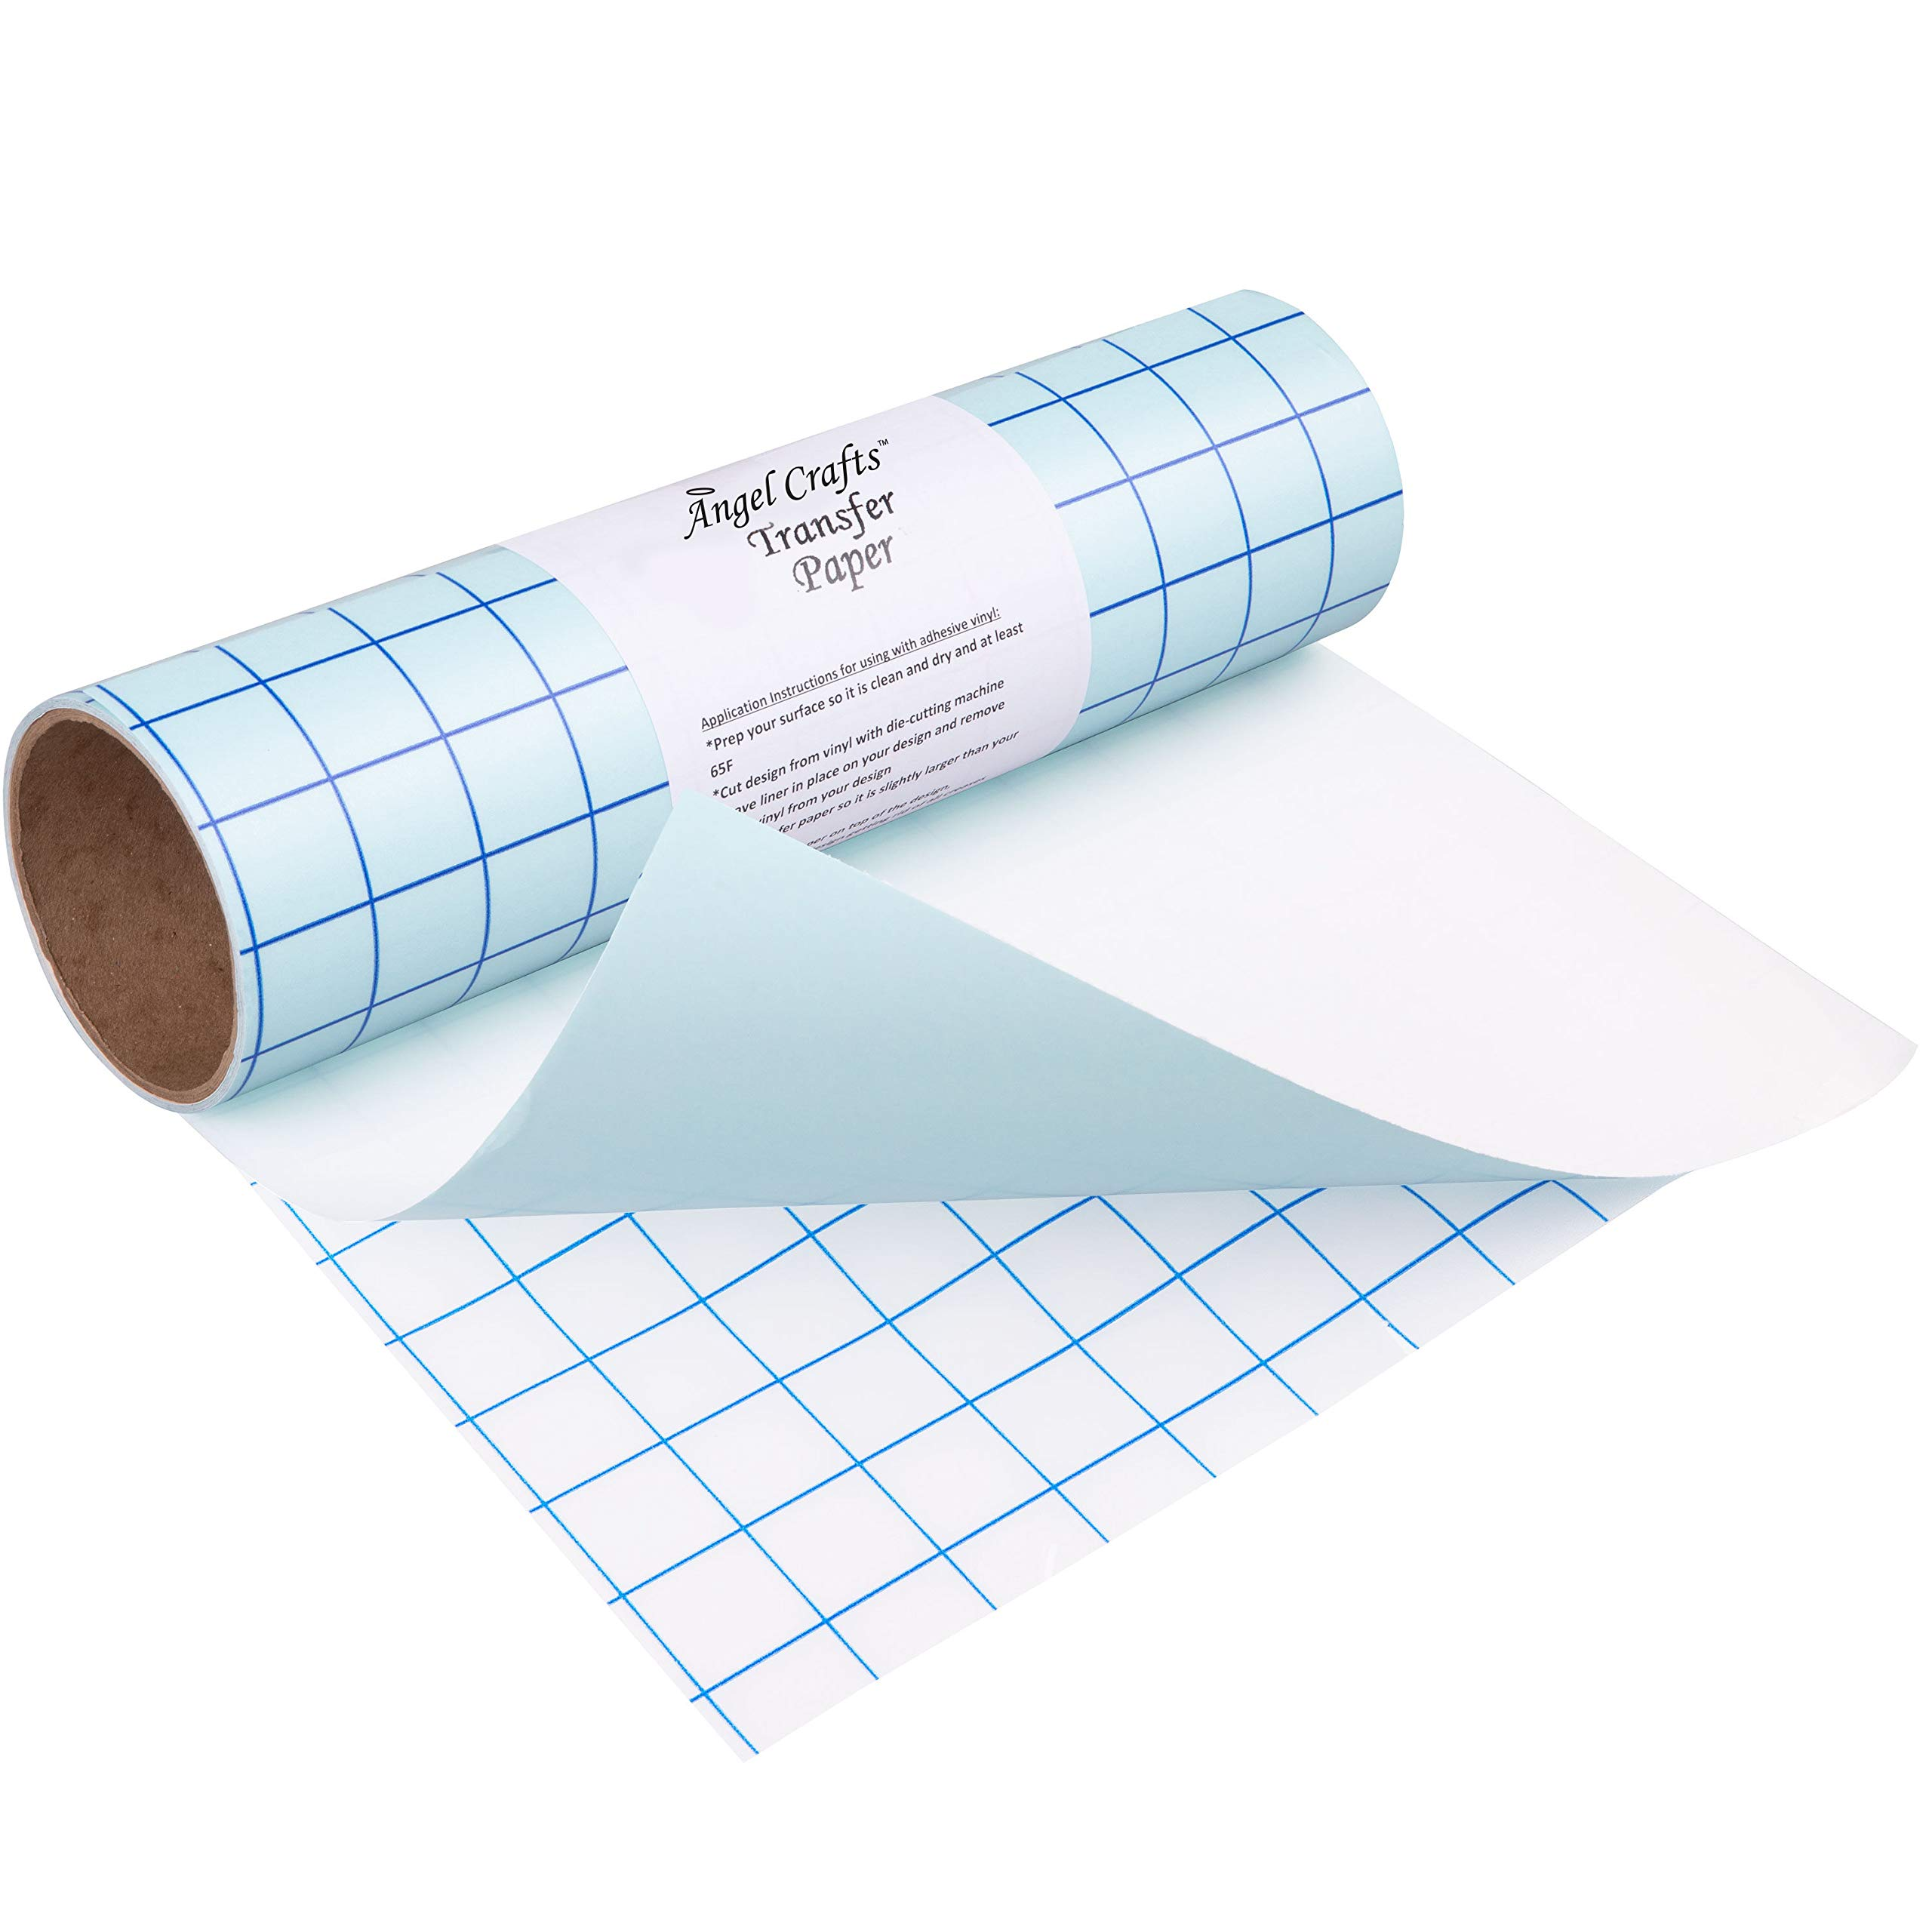 Angel Crafts Transfer Paper Tape: Craft Transfer Tape for Vinyl Application with Blue Grid Lines - Self Adhesive Transfer Paper Roll Compatible with Cricut, Silhouette Cameo - 12 Inch by 8 Feet, Clear by Angel Crafts